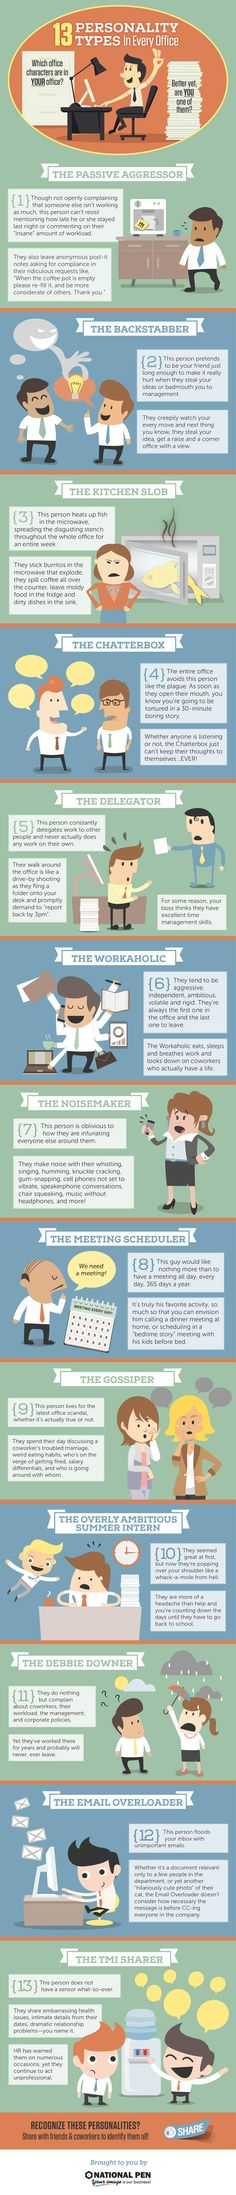 personalities-in-busy-office-infographic